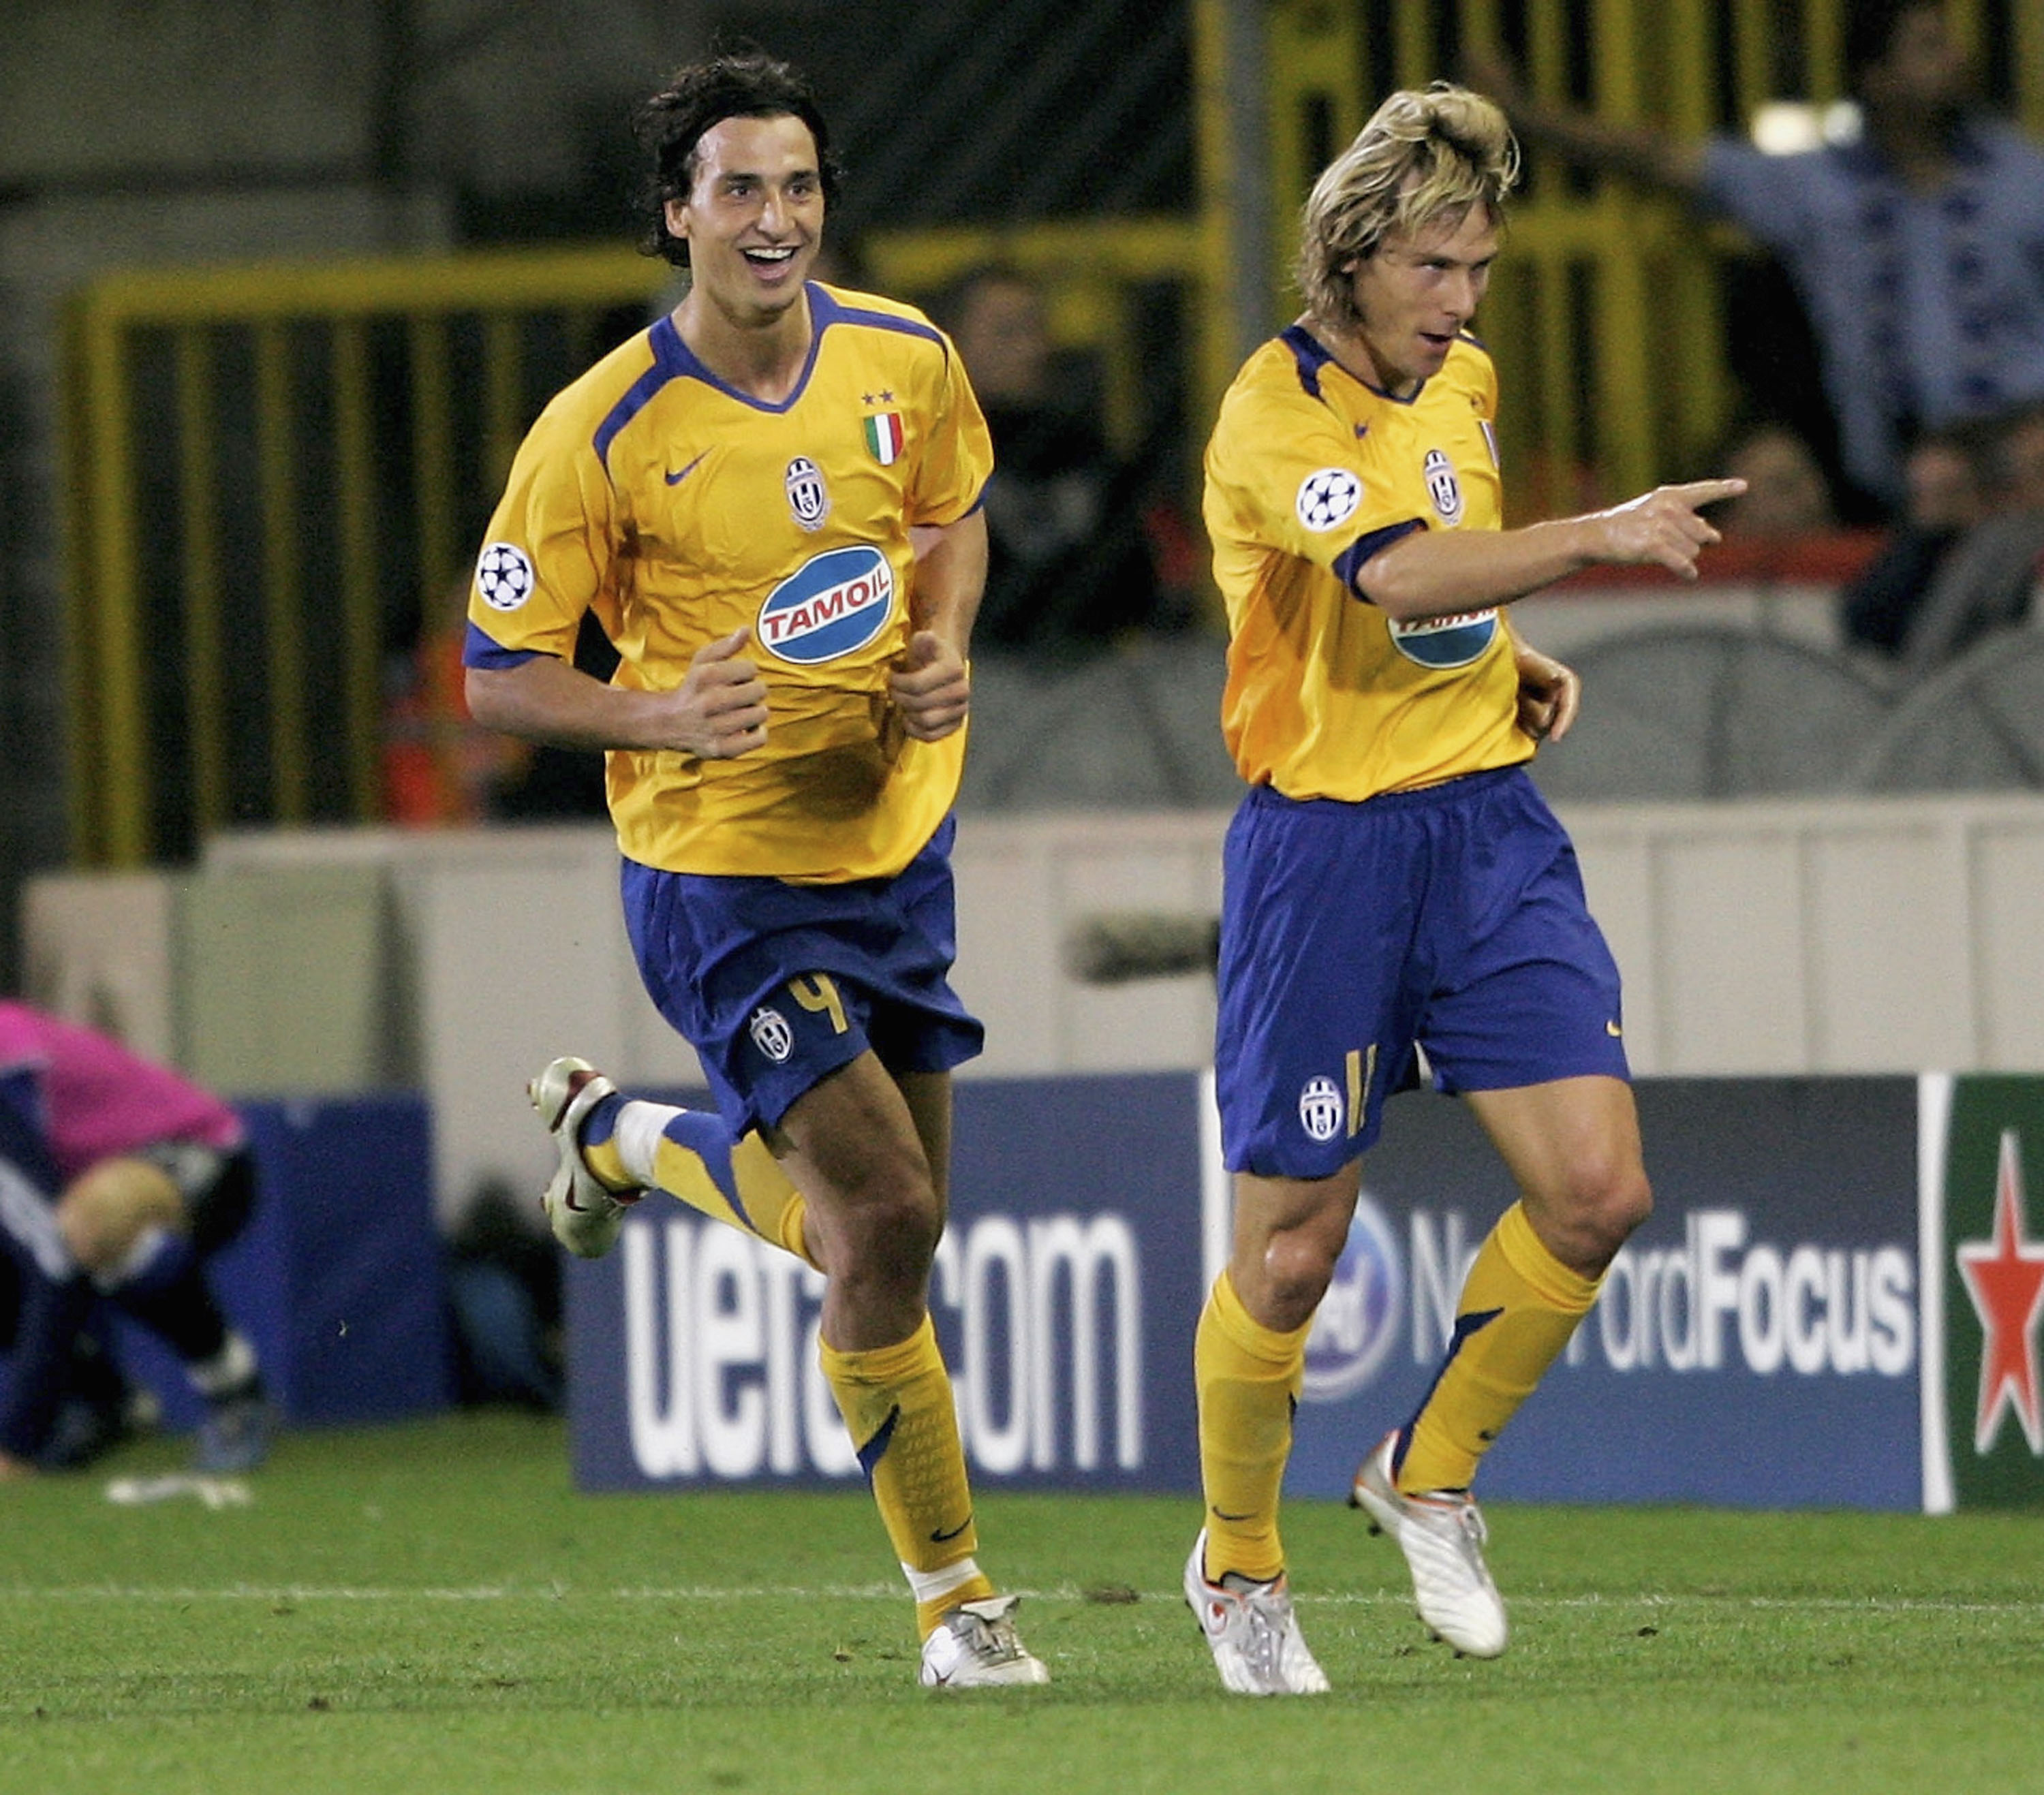 An inteview with Mino Raiola on all things Pavel Nedved [2008] -Juvefc ...